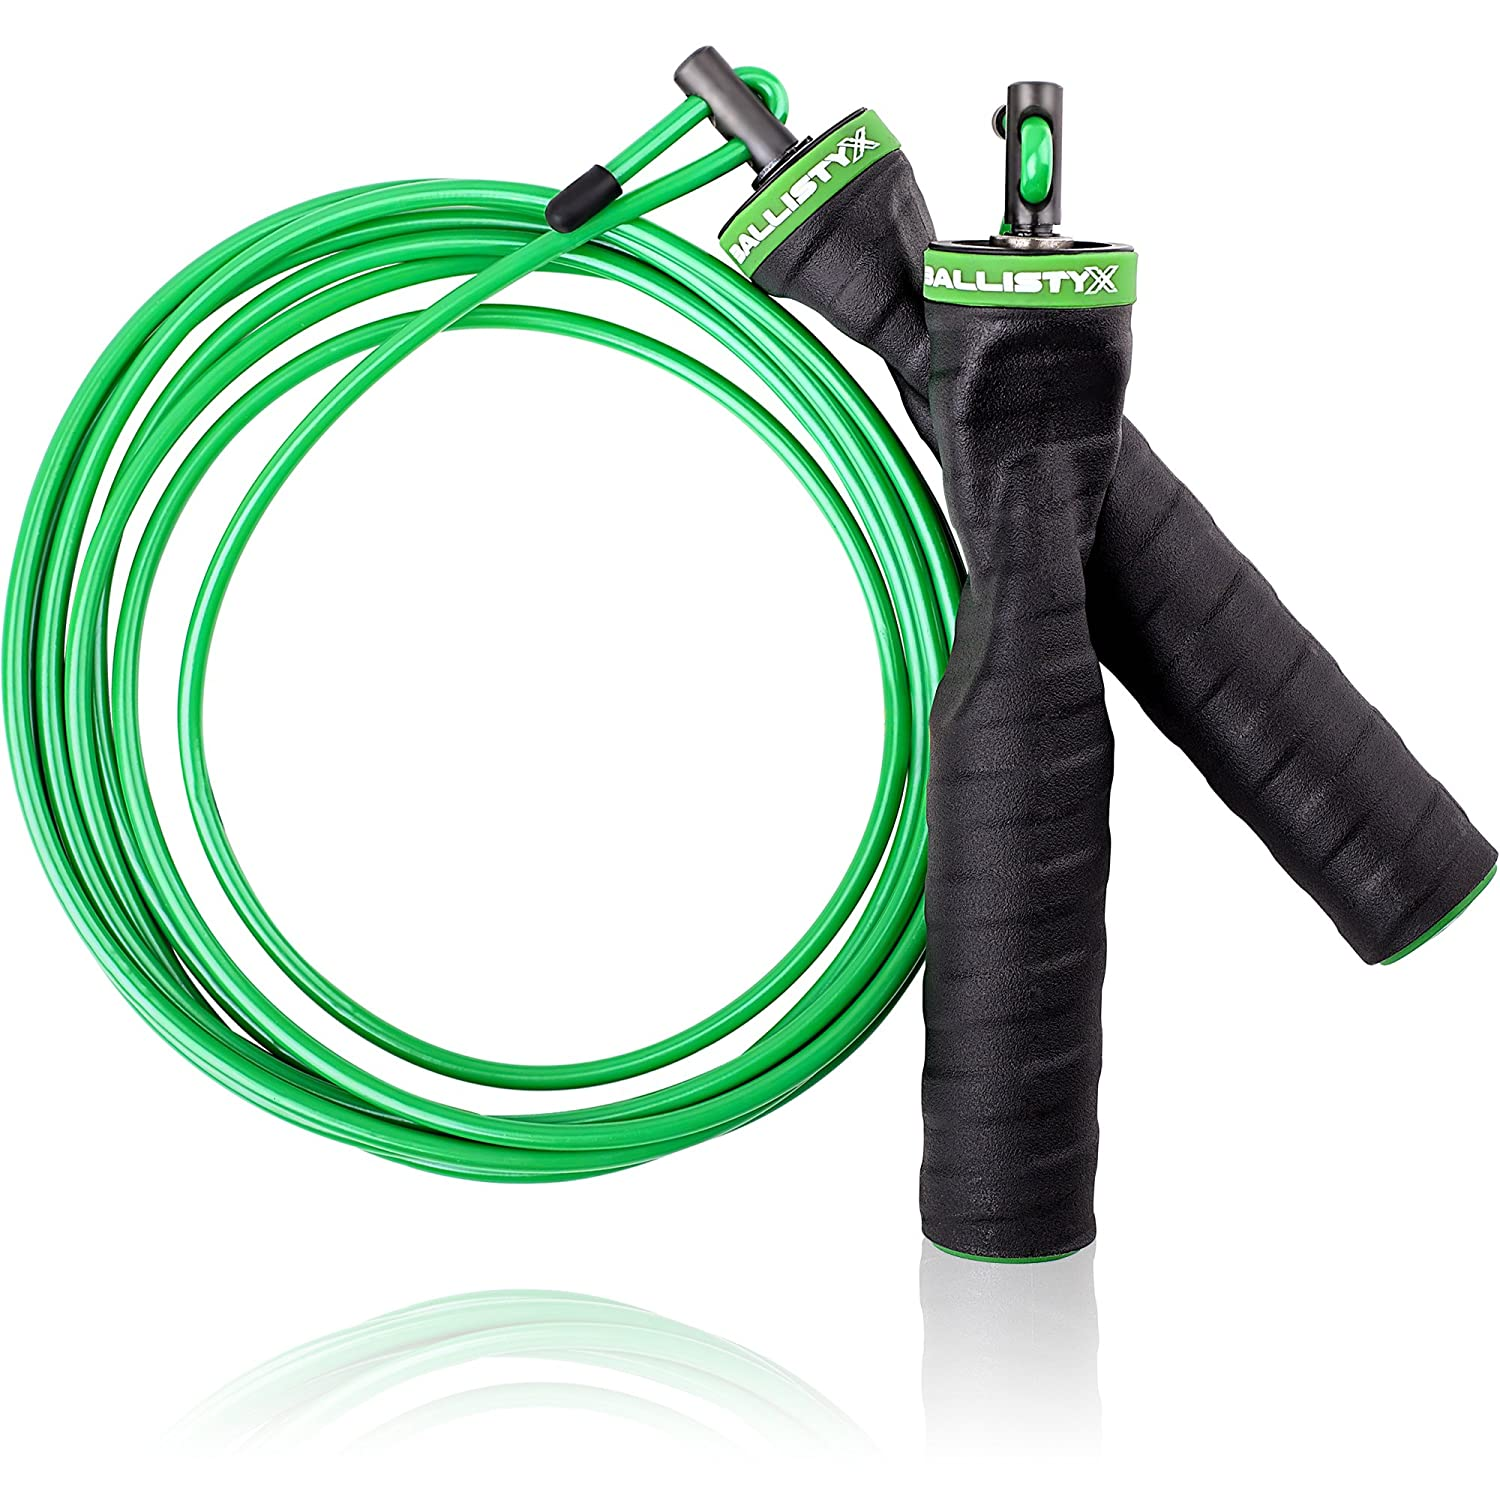 how to measure jump rope for double unders